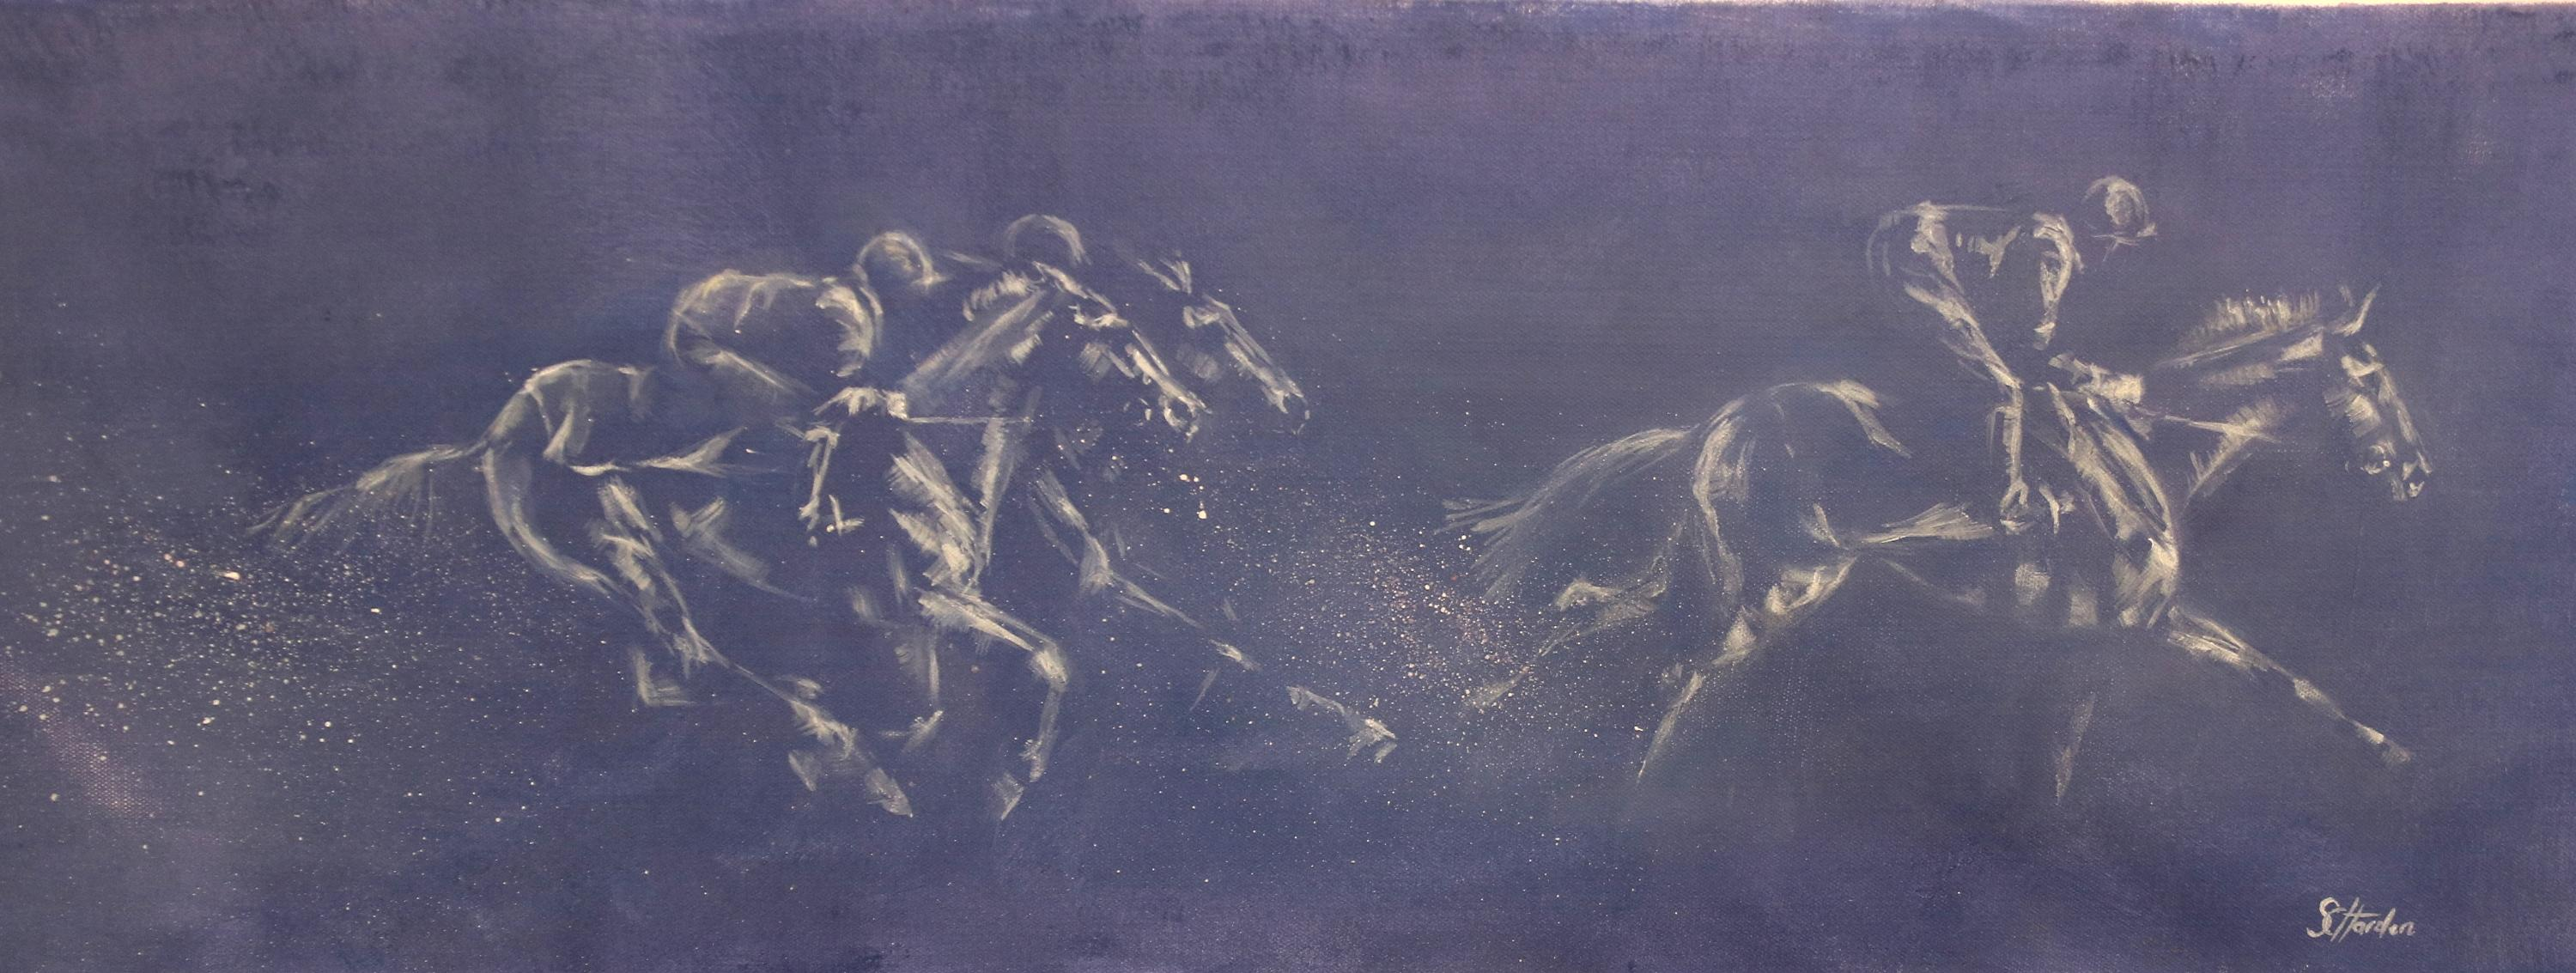 Goggles Down, Original Blue Painting of Horse Riders